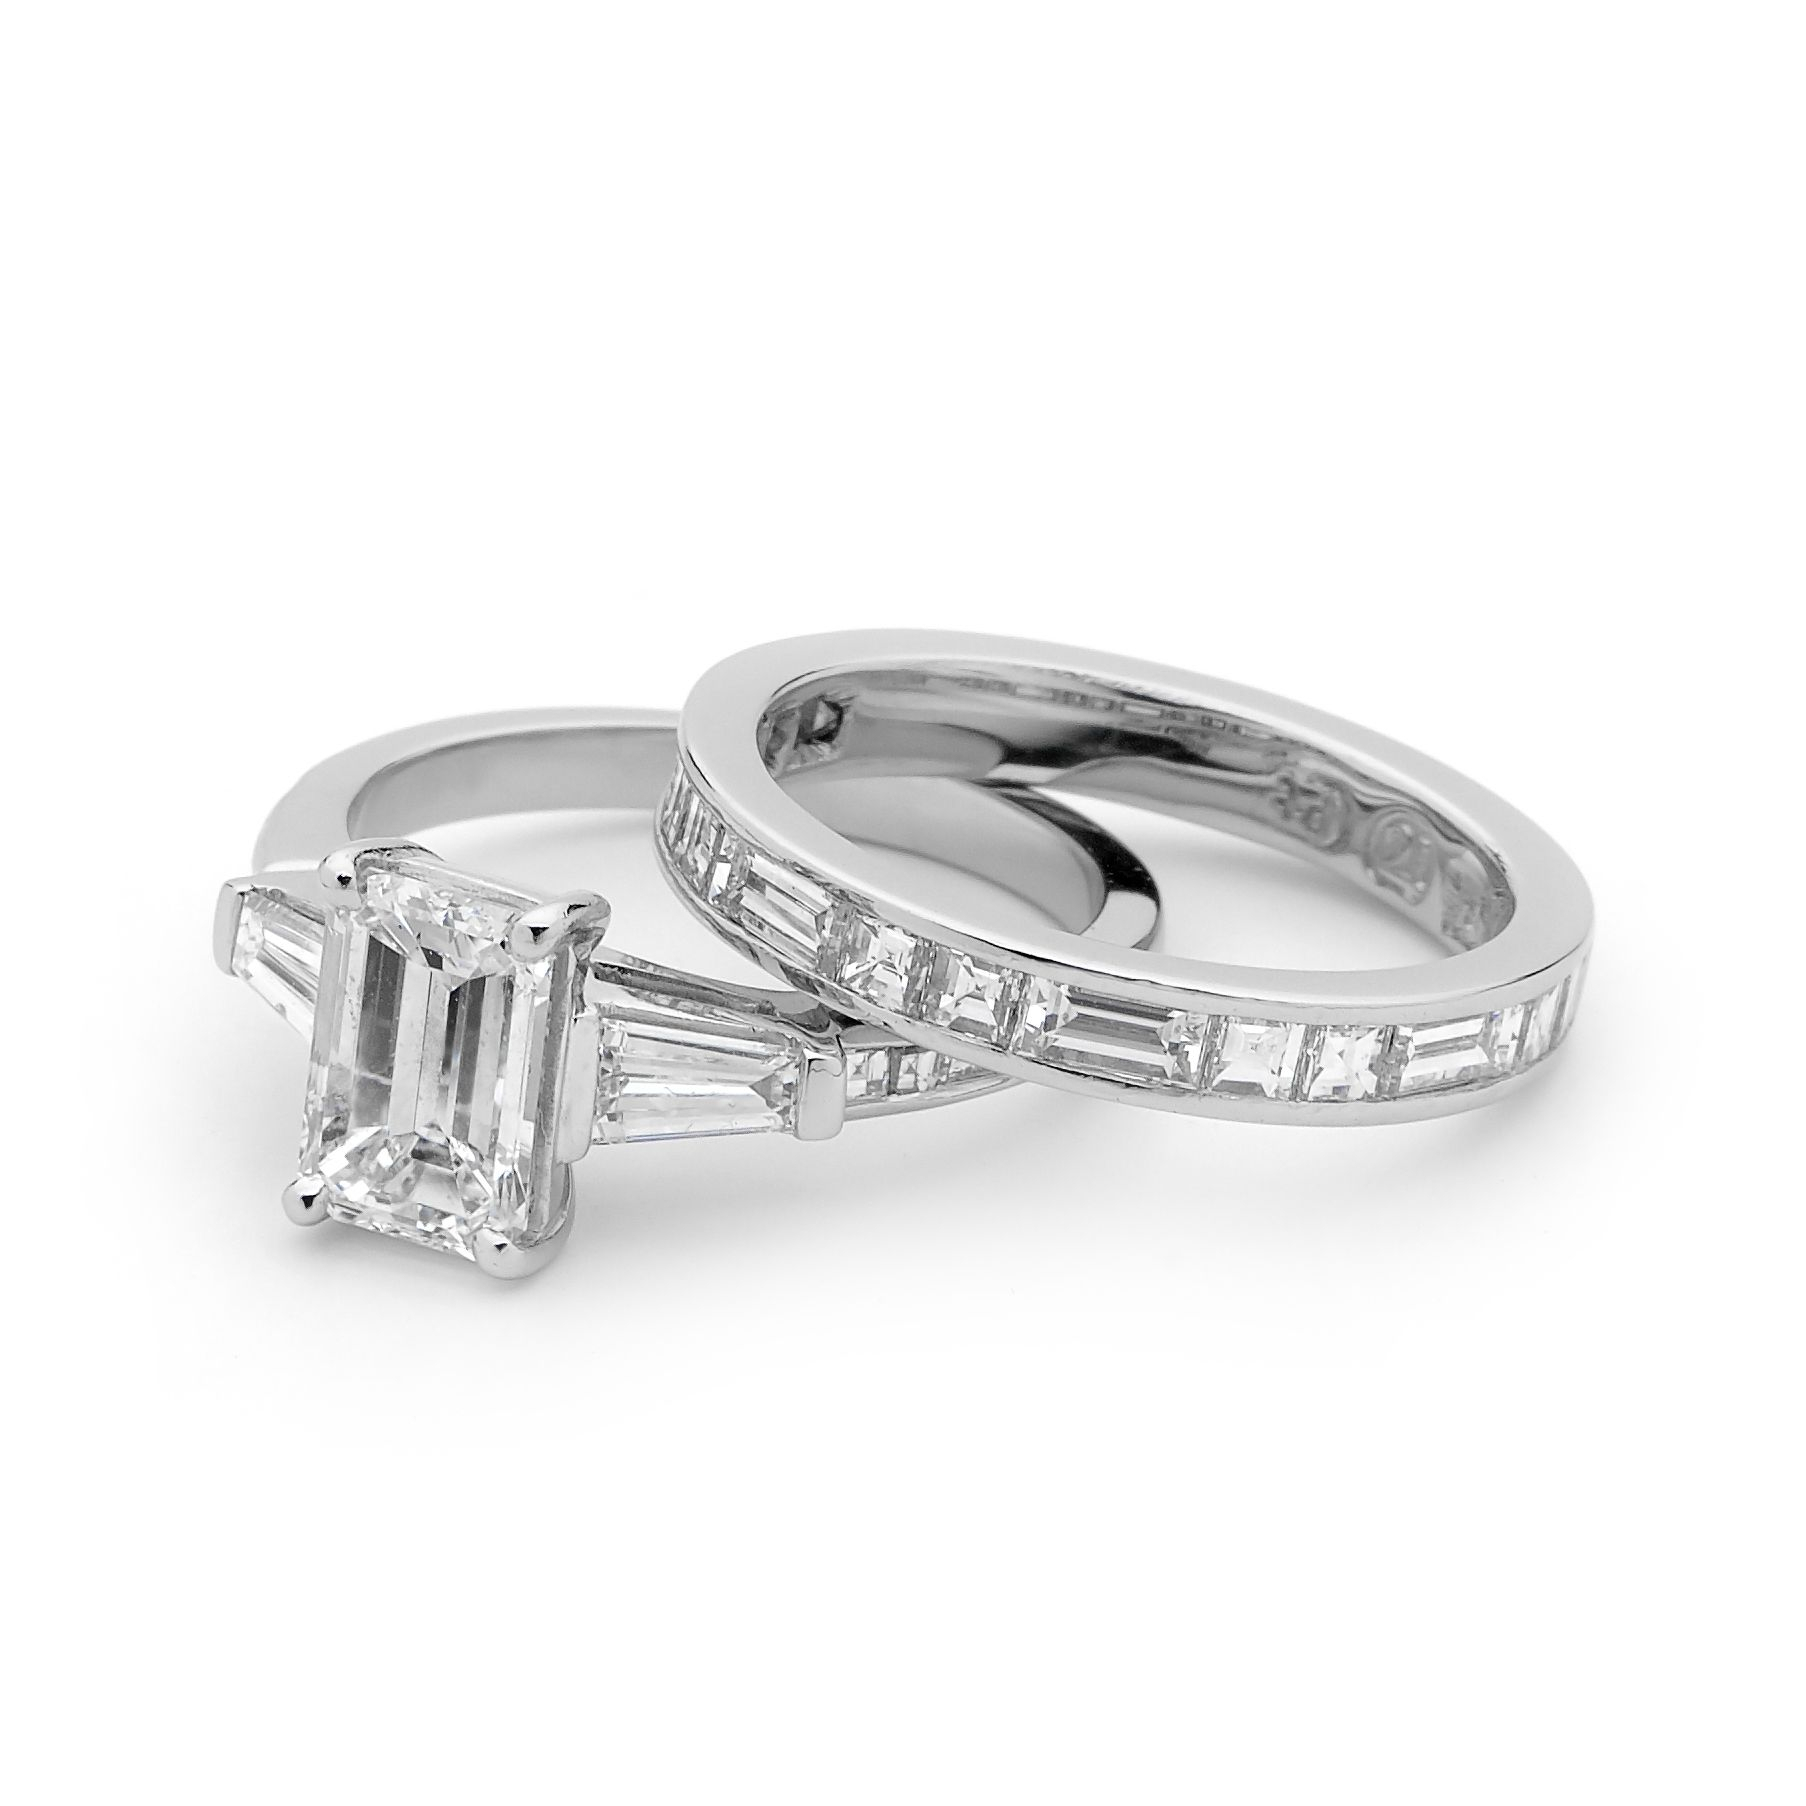 Emerald Cut Diamond Engagement Ring With Wedding Band To With Regard To Latest Bar Set Round Brilliant And Emerald Cut Diamond Wedding Bands (Gallery 13 of 25)